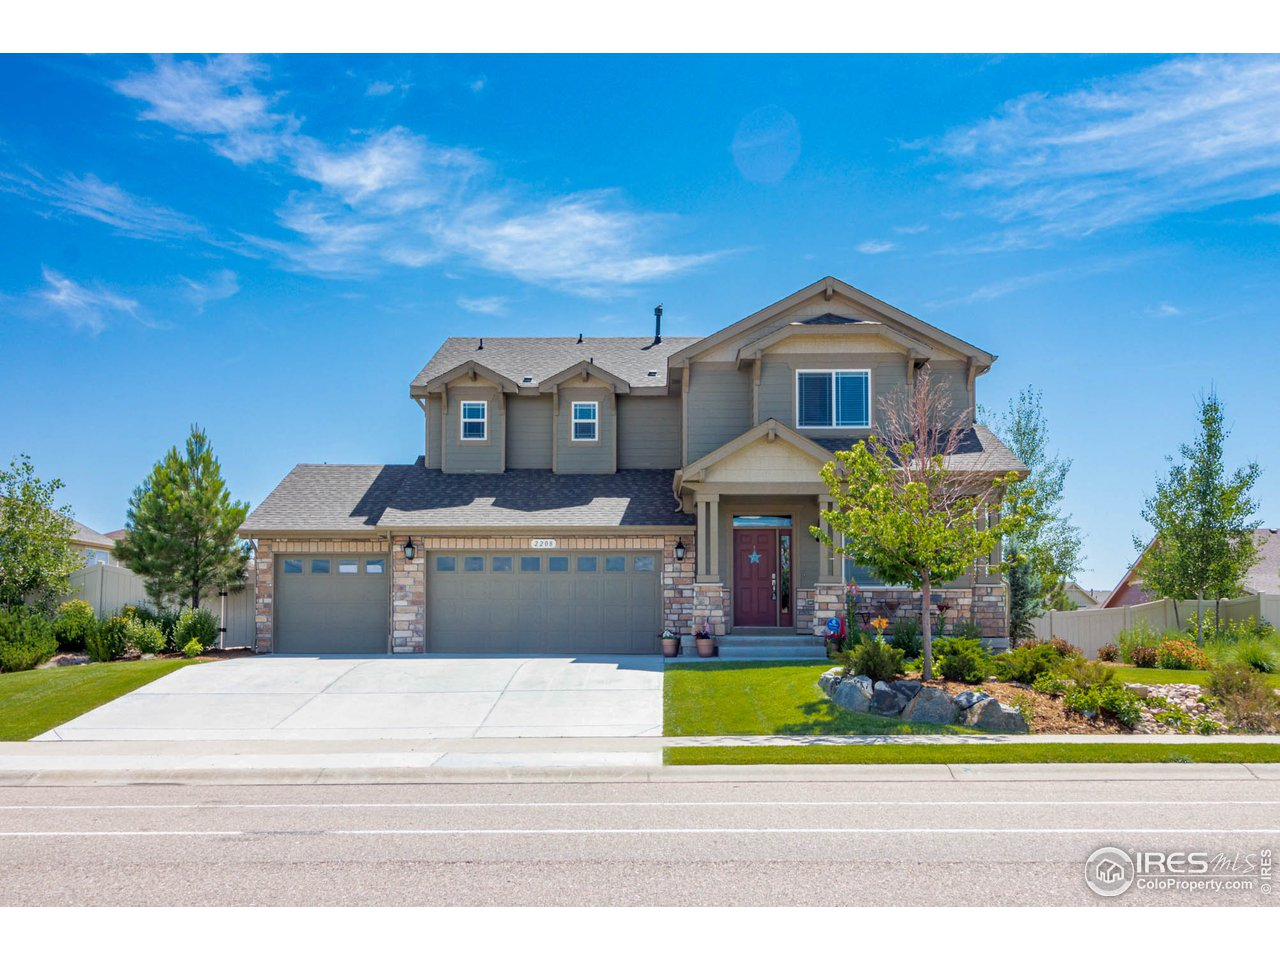 2208 82nd Ave, Greeley CO 80634